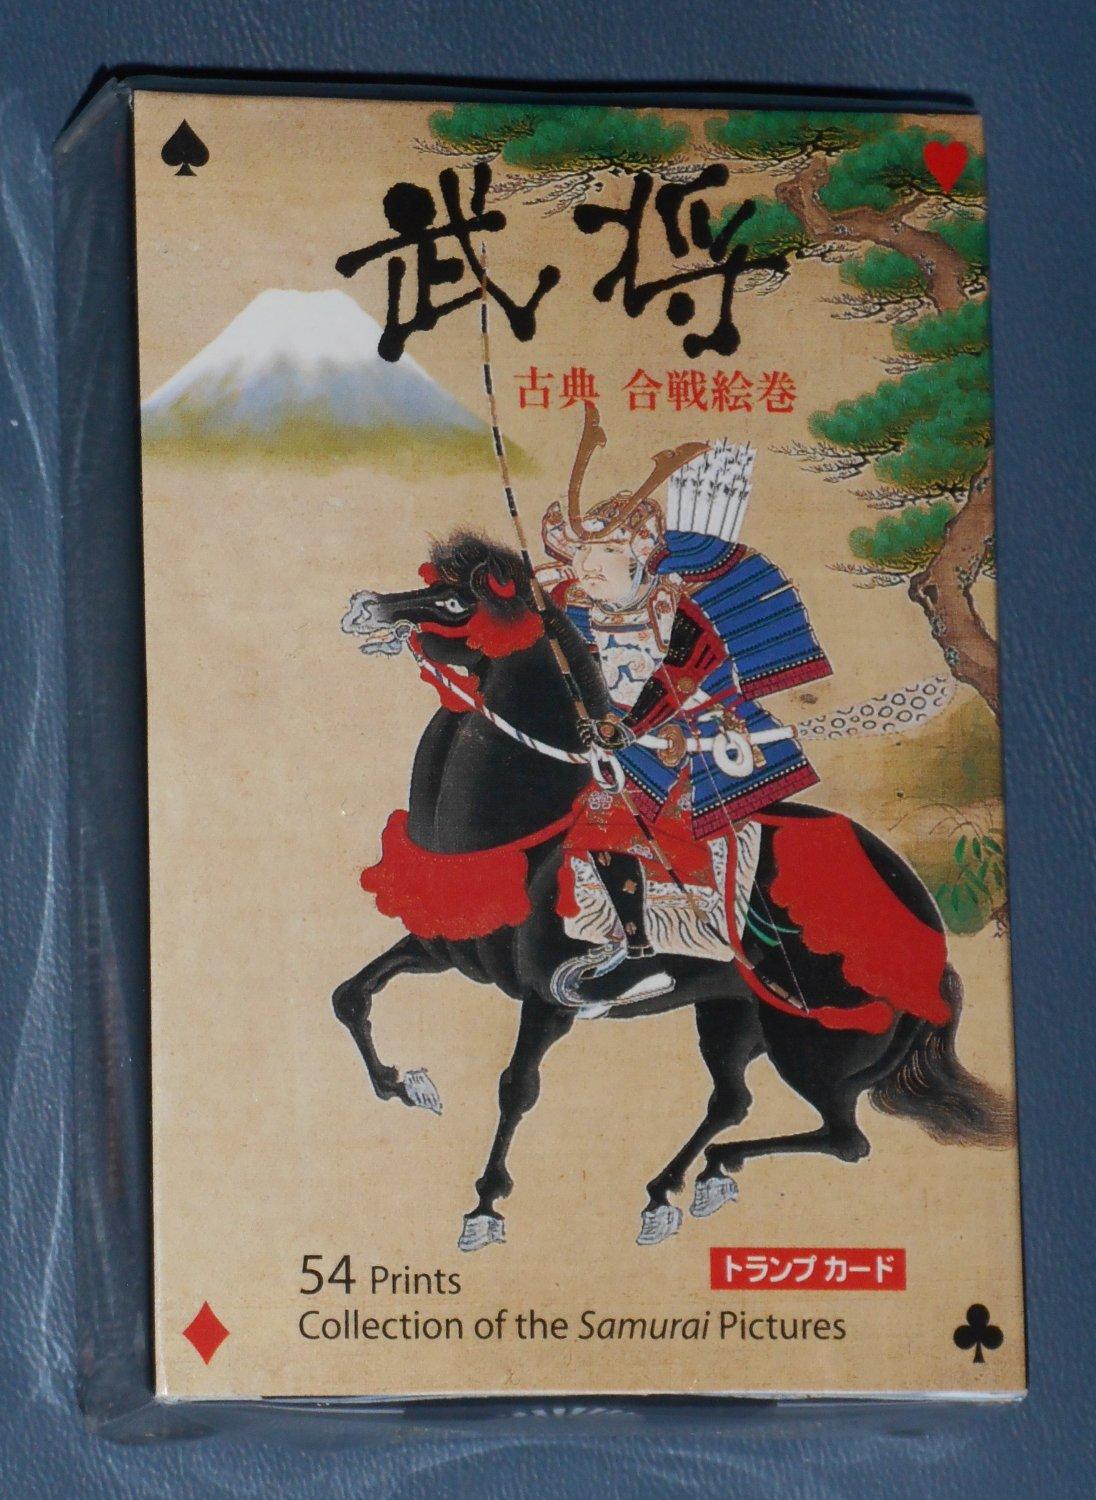 Samurai Classic Warrior Battle Playing Cards Collection 54 Pictures Prints New in Box Fukui Asahido